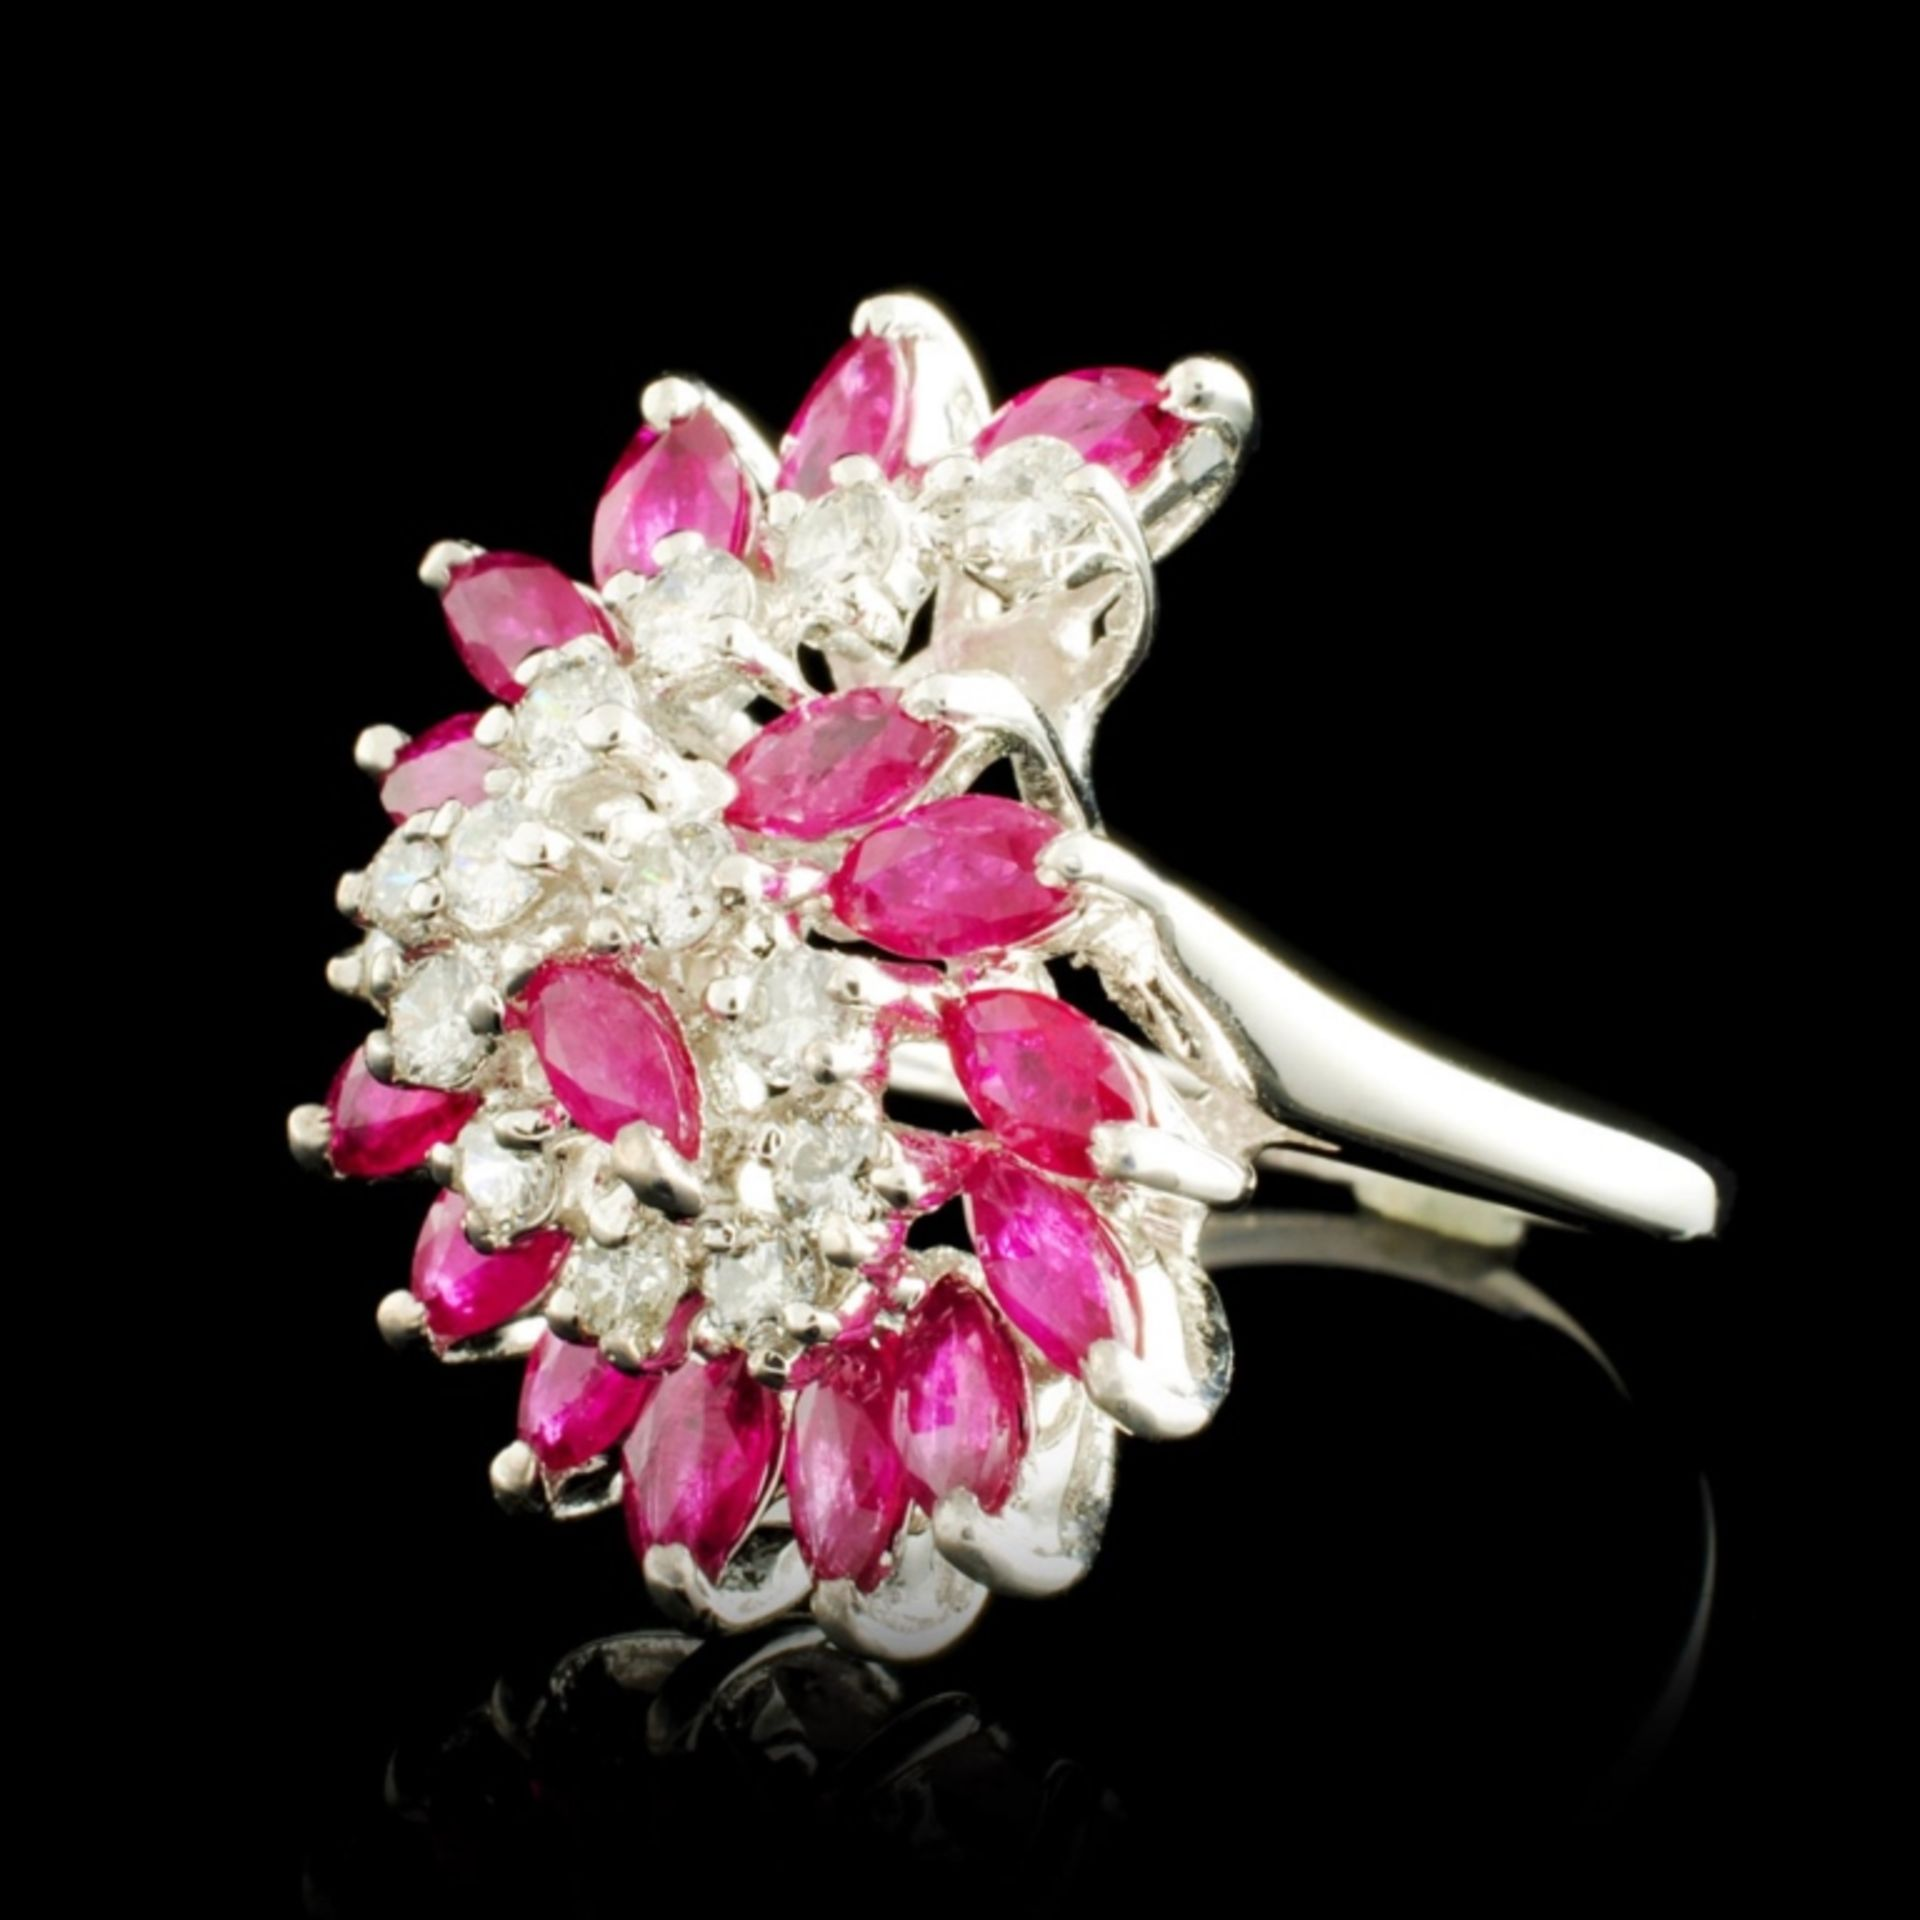 14K Gold 1.92ct Ruby & 0.35ctw Diamond Ring - Image 2 of 5